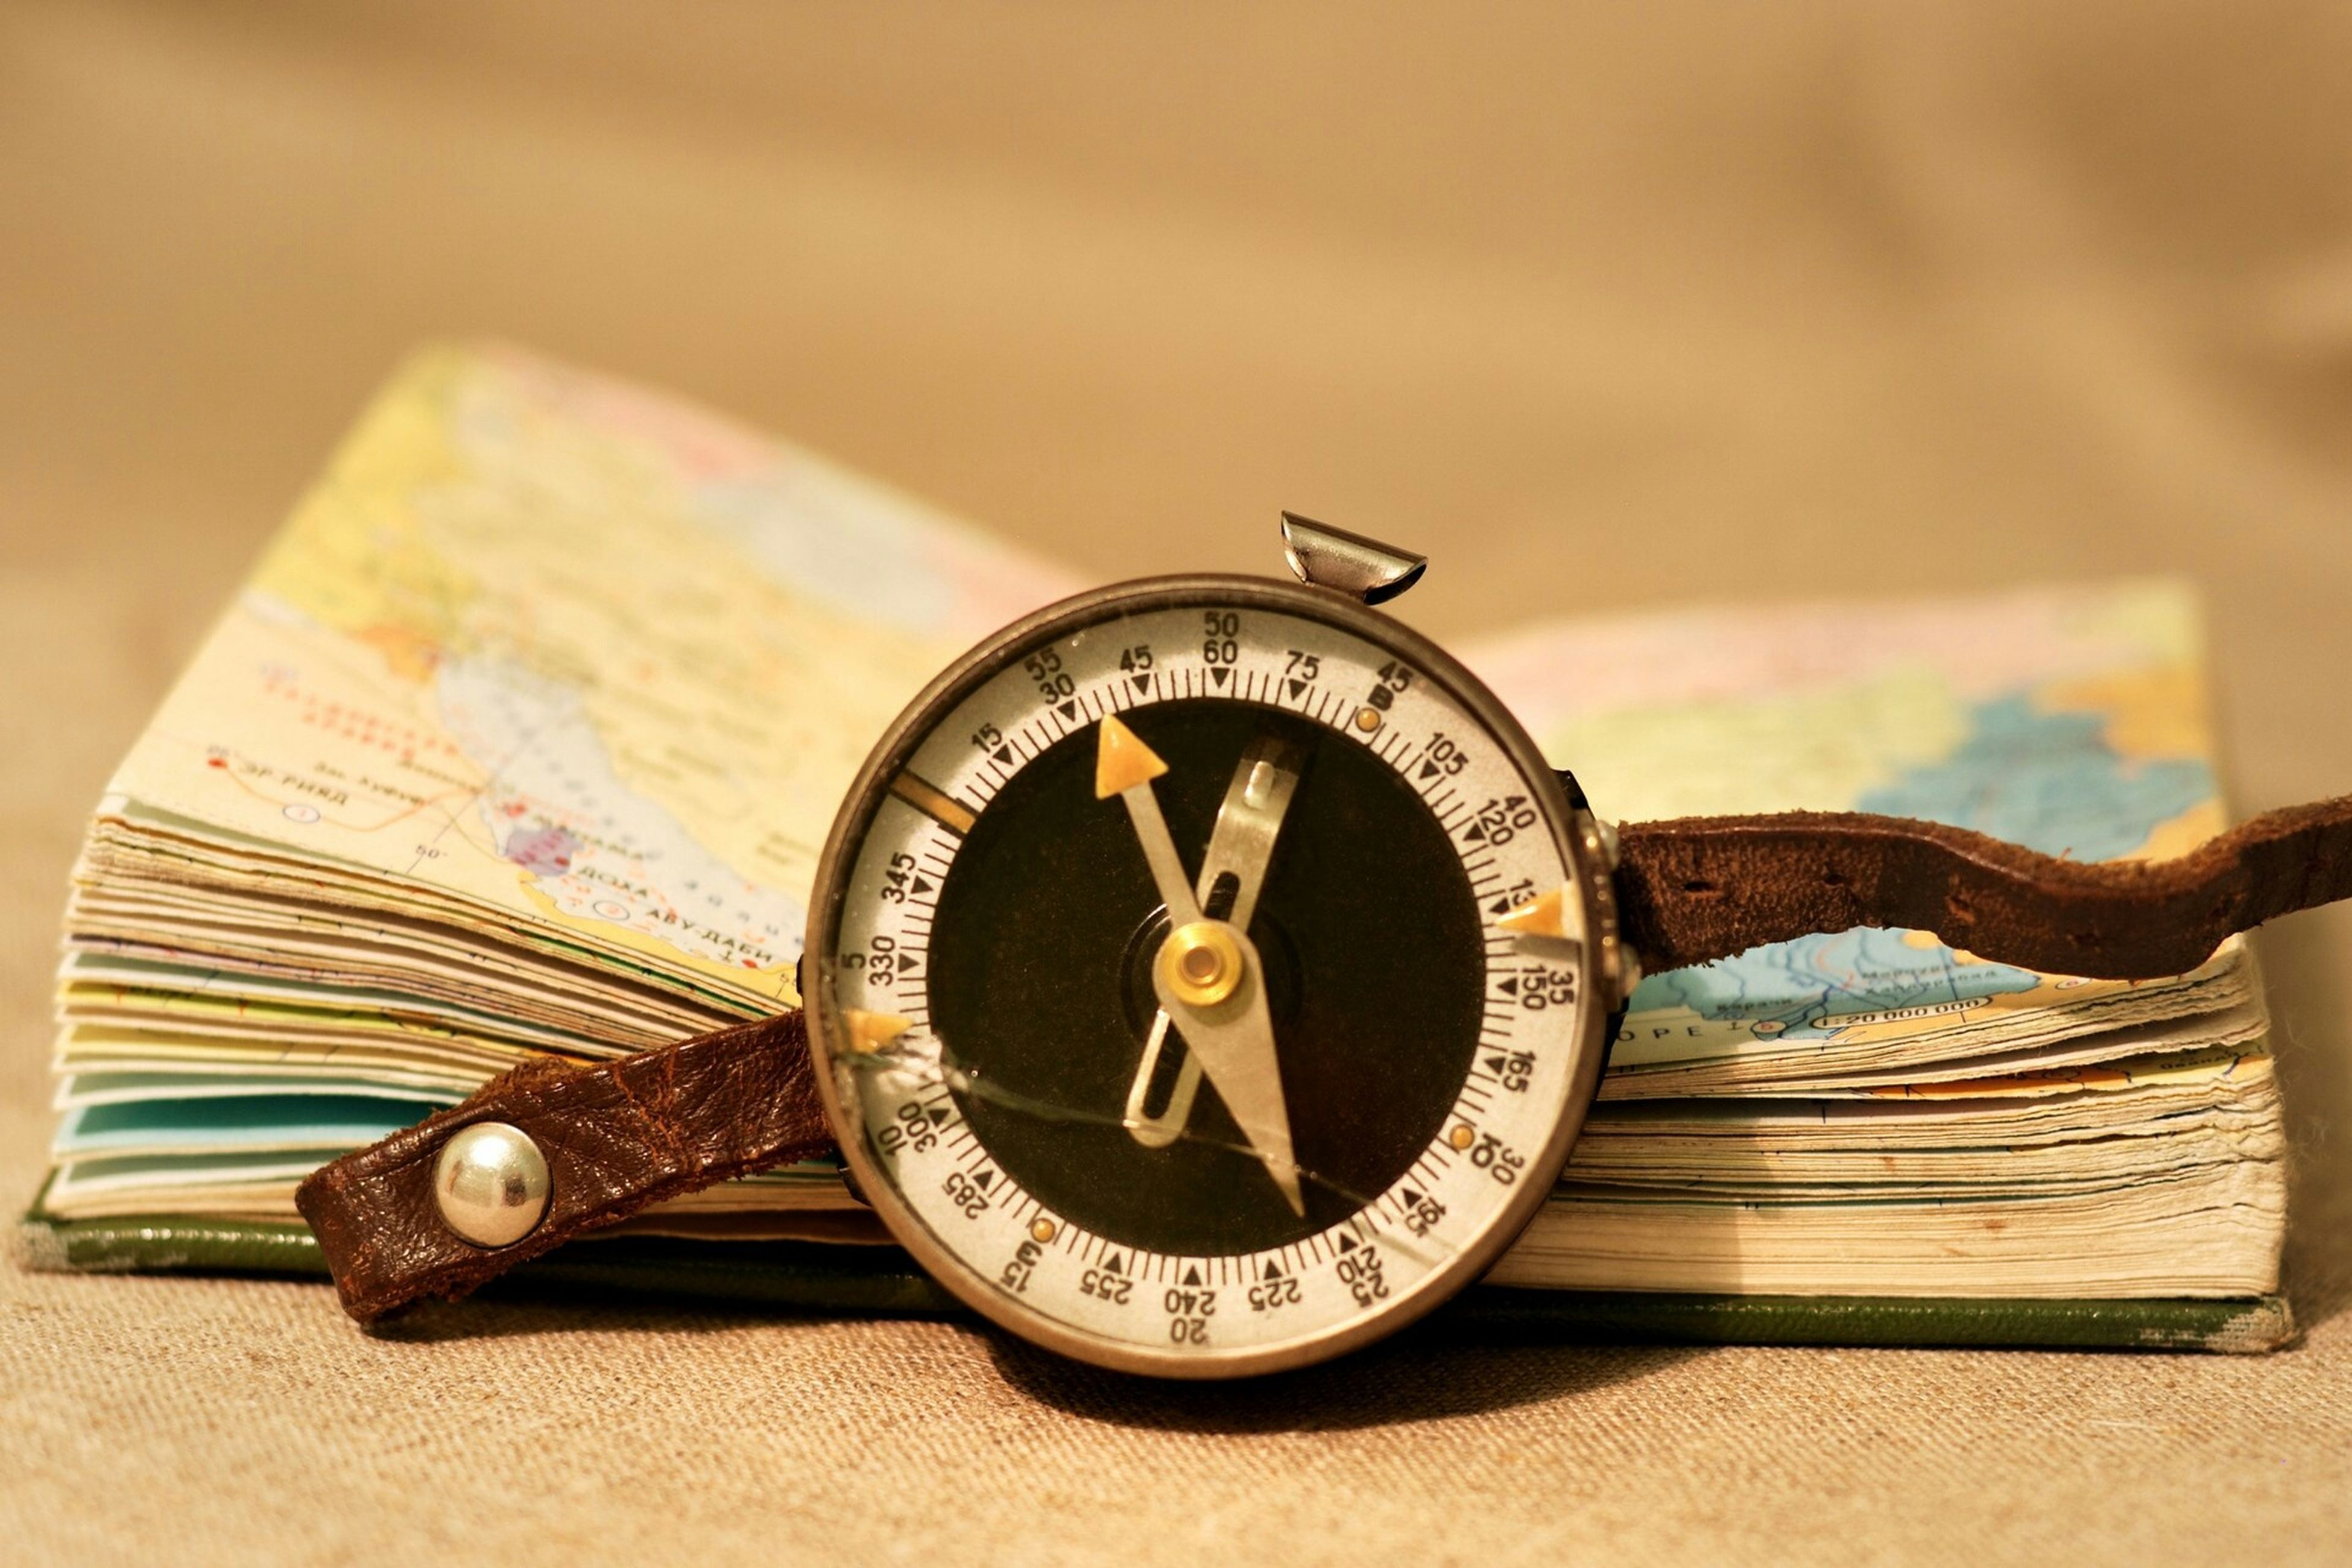 text, communication, indoors, retro styled, close-up, number, old-fashioned, time, still life, antique, clock, old, single object, western script, metal, focus on foreground, table, wood - material, man made object, technology